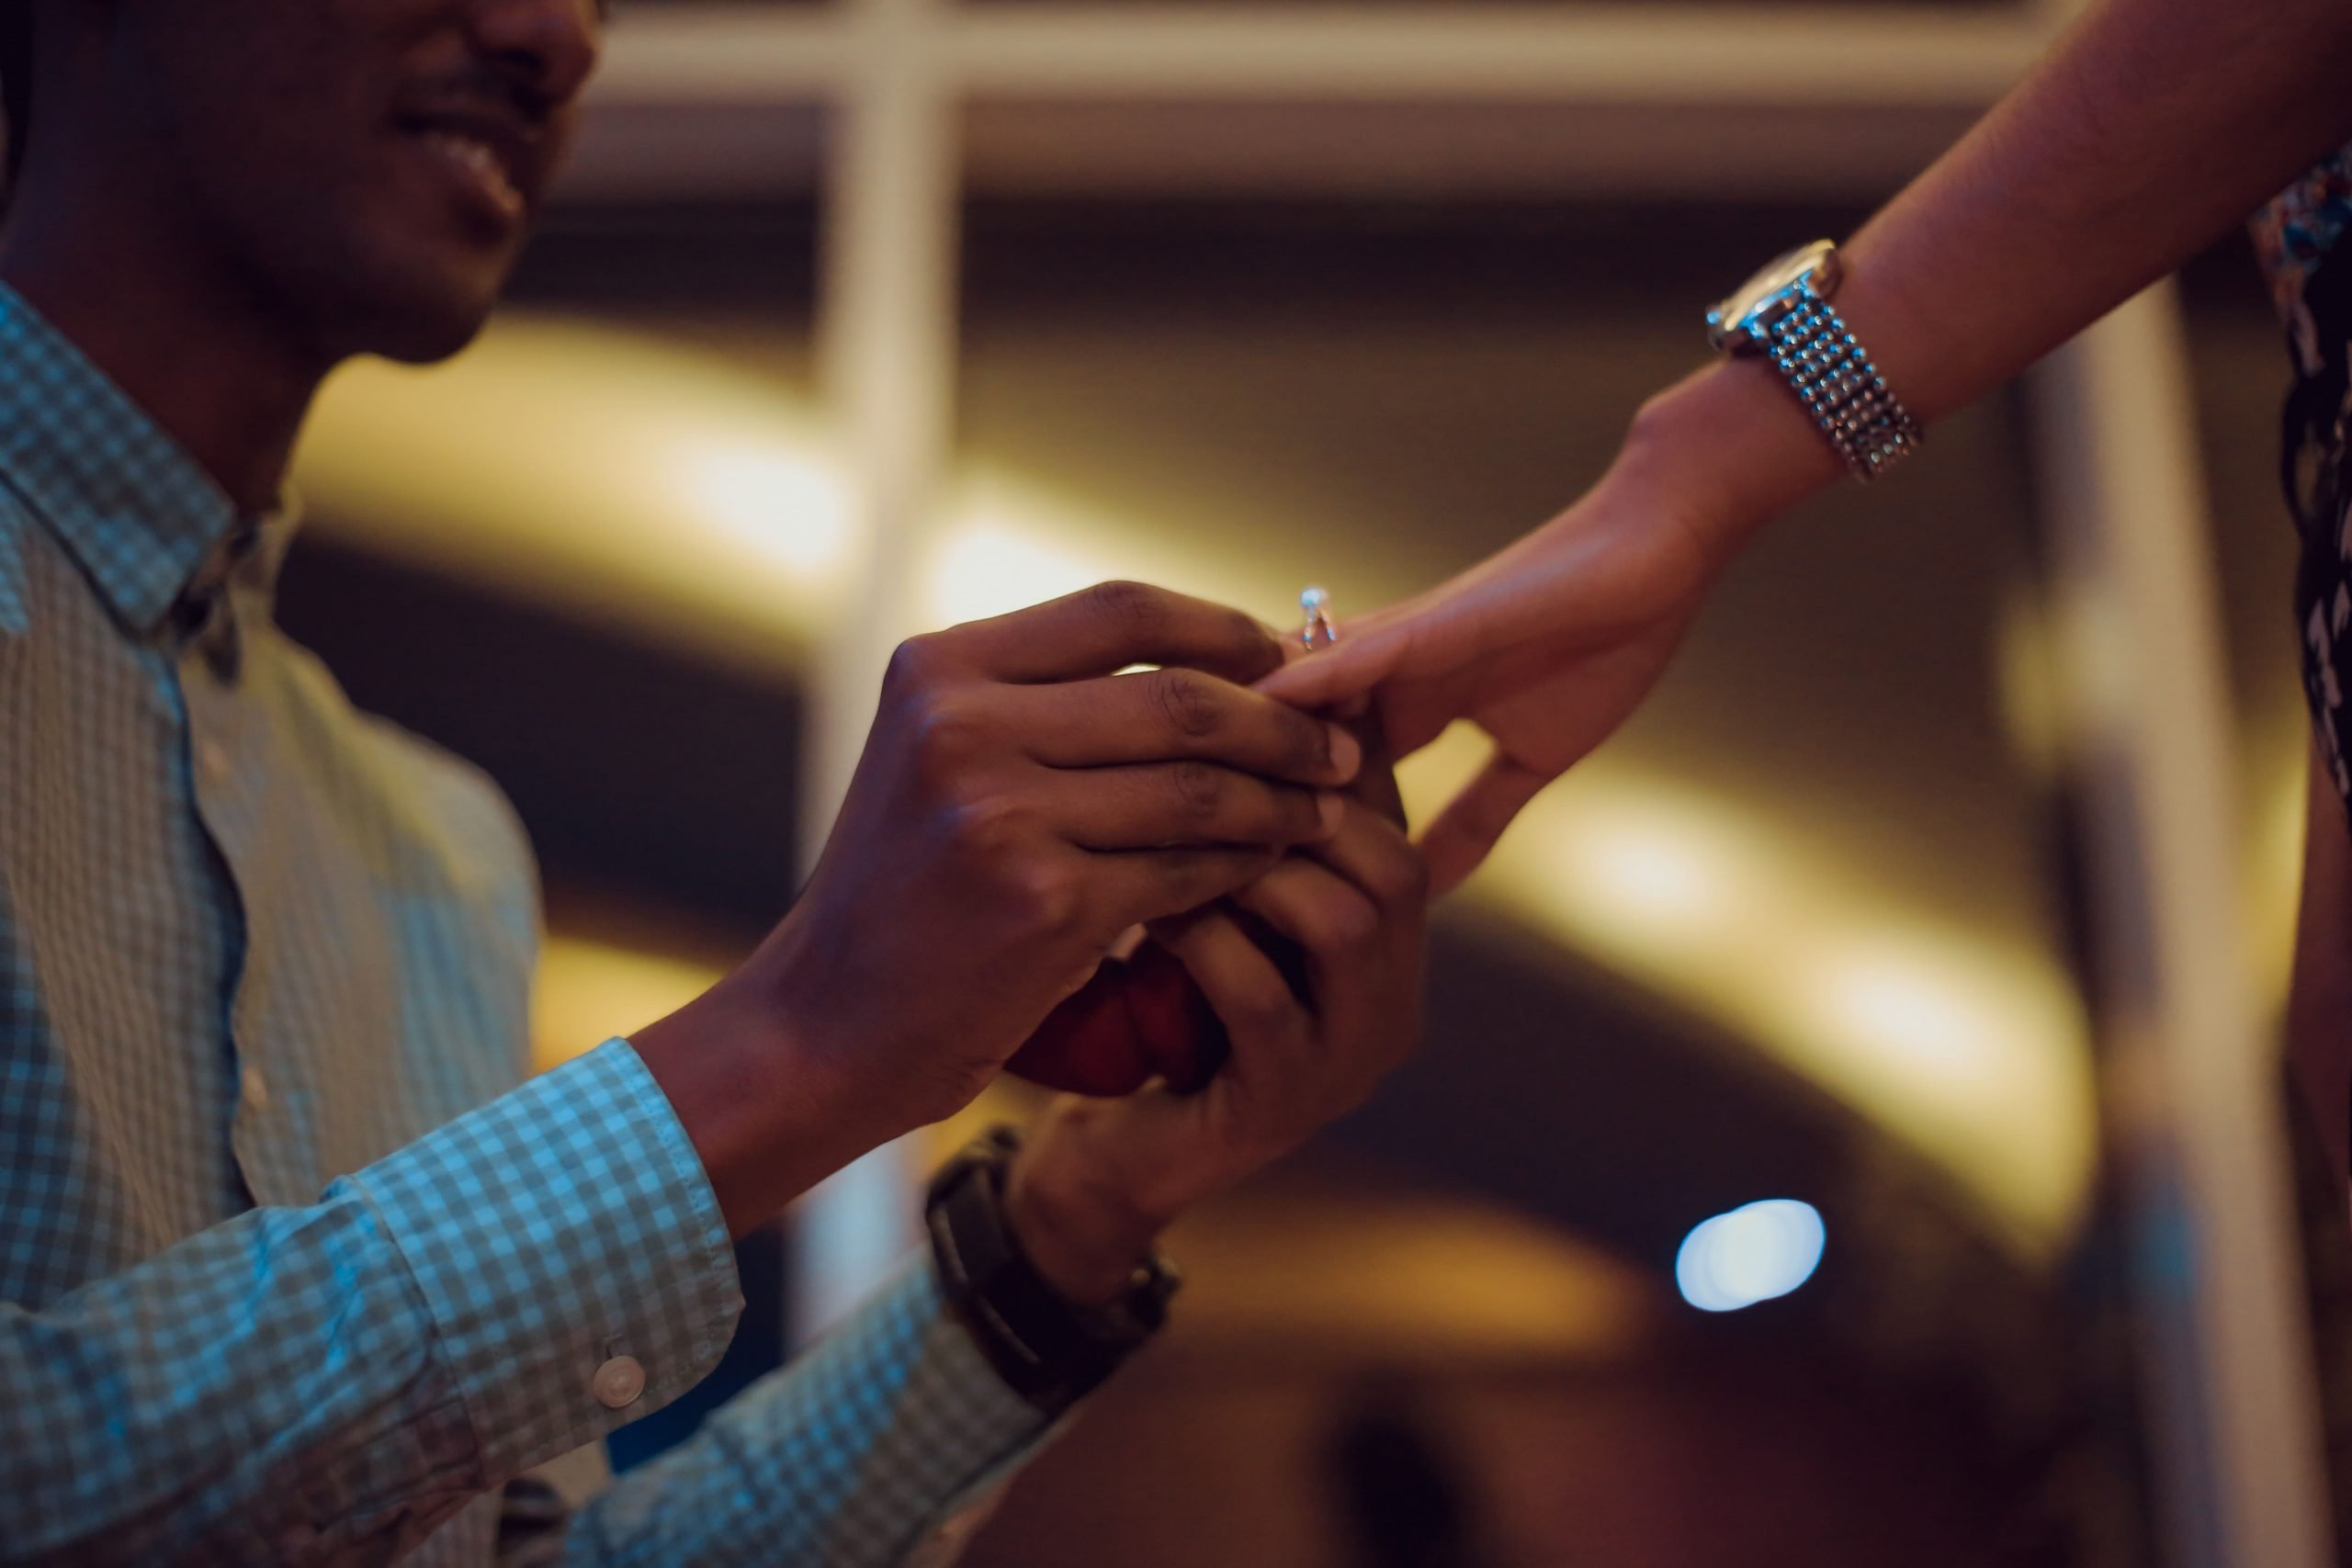 Engagement rings | eOpinion.org